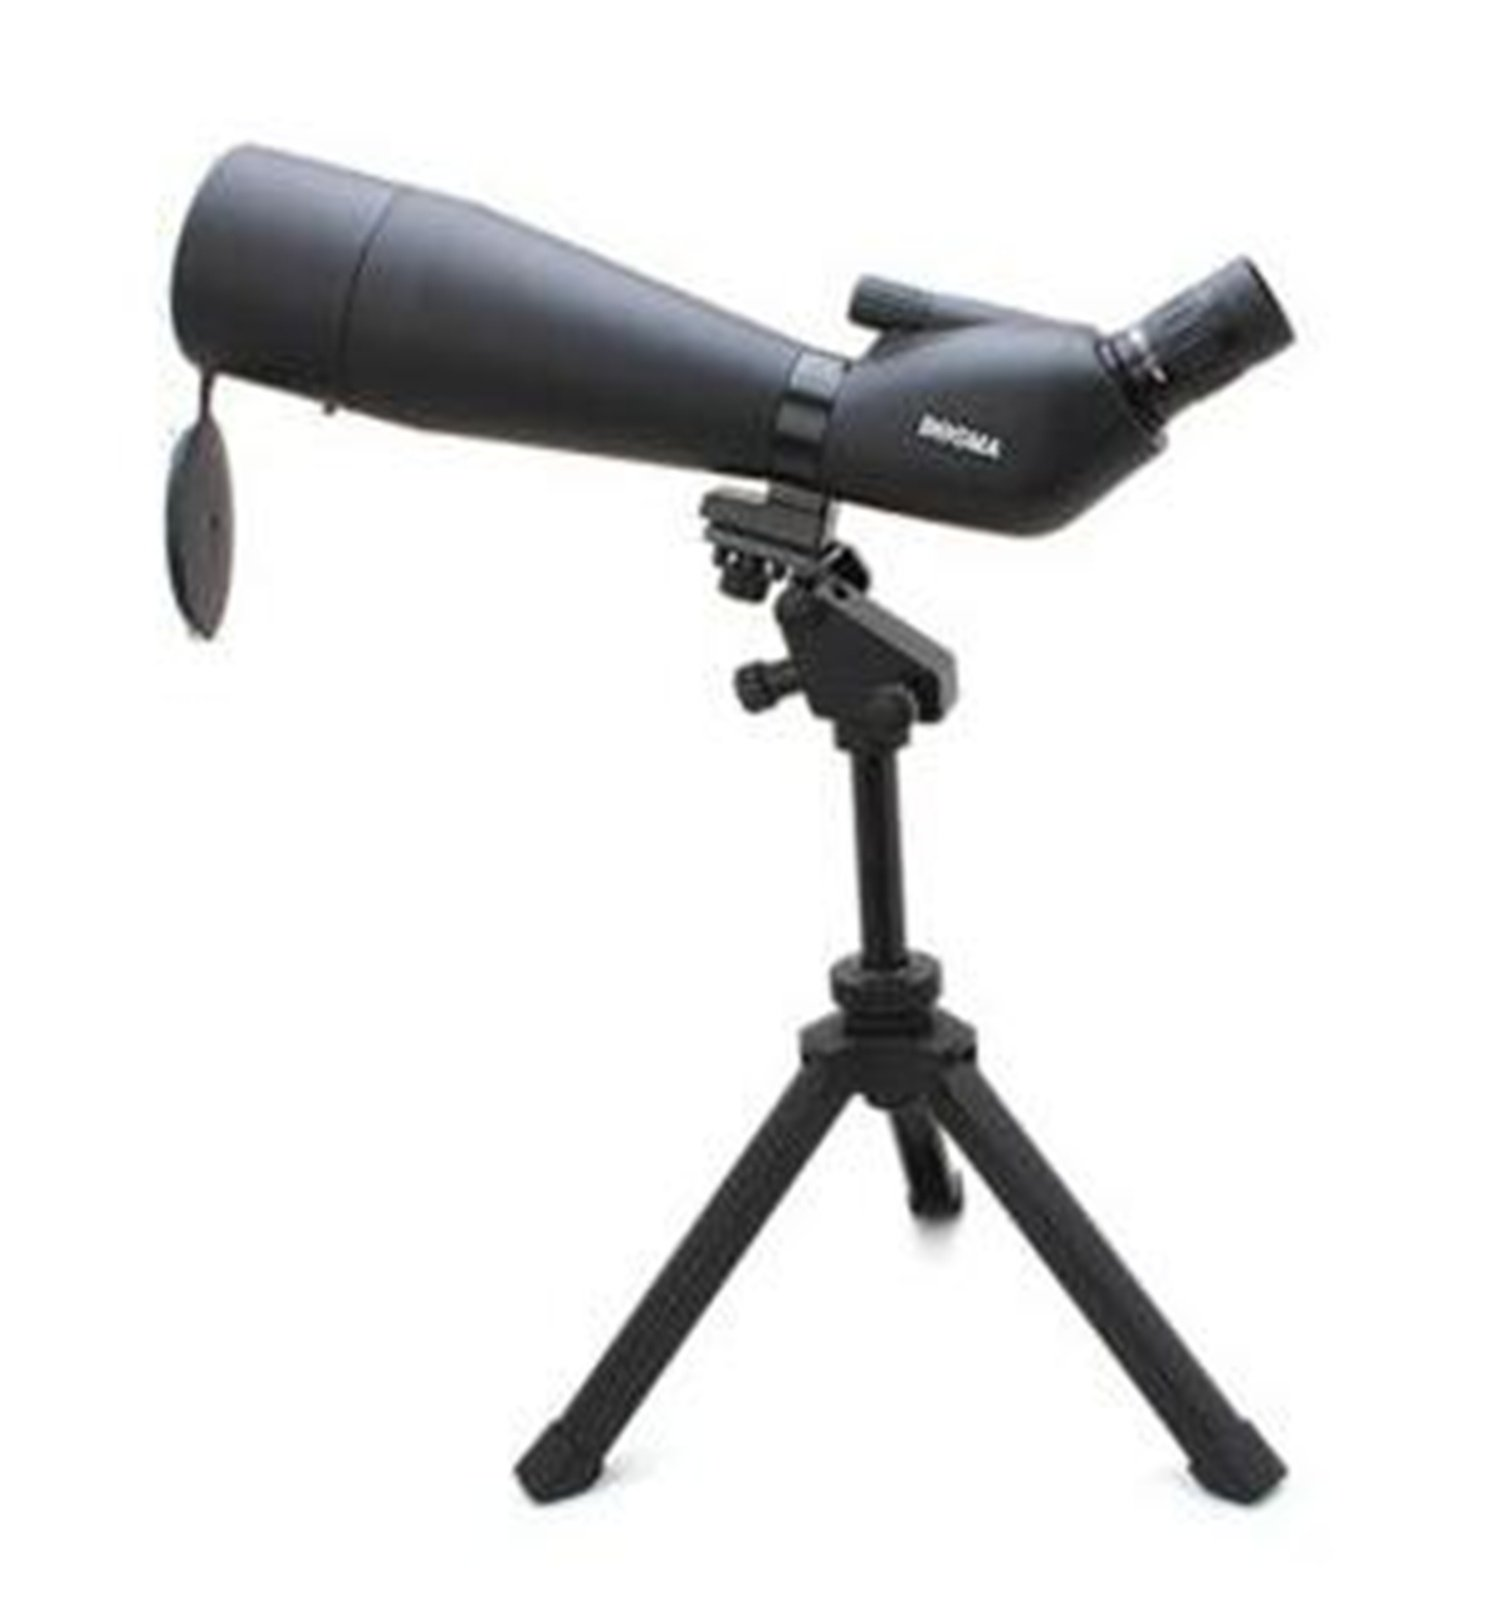 Bosma telescope unparalleled 20-60X80 telescope high magnification zoom HD viewing spotting scope telescope night vision binoculars